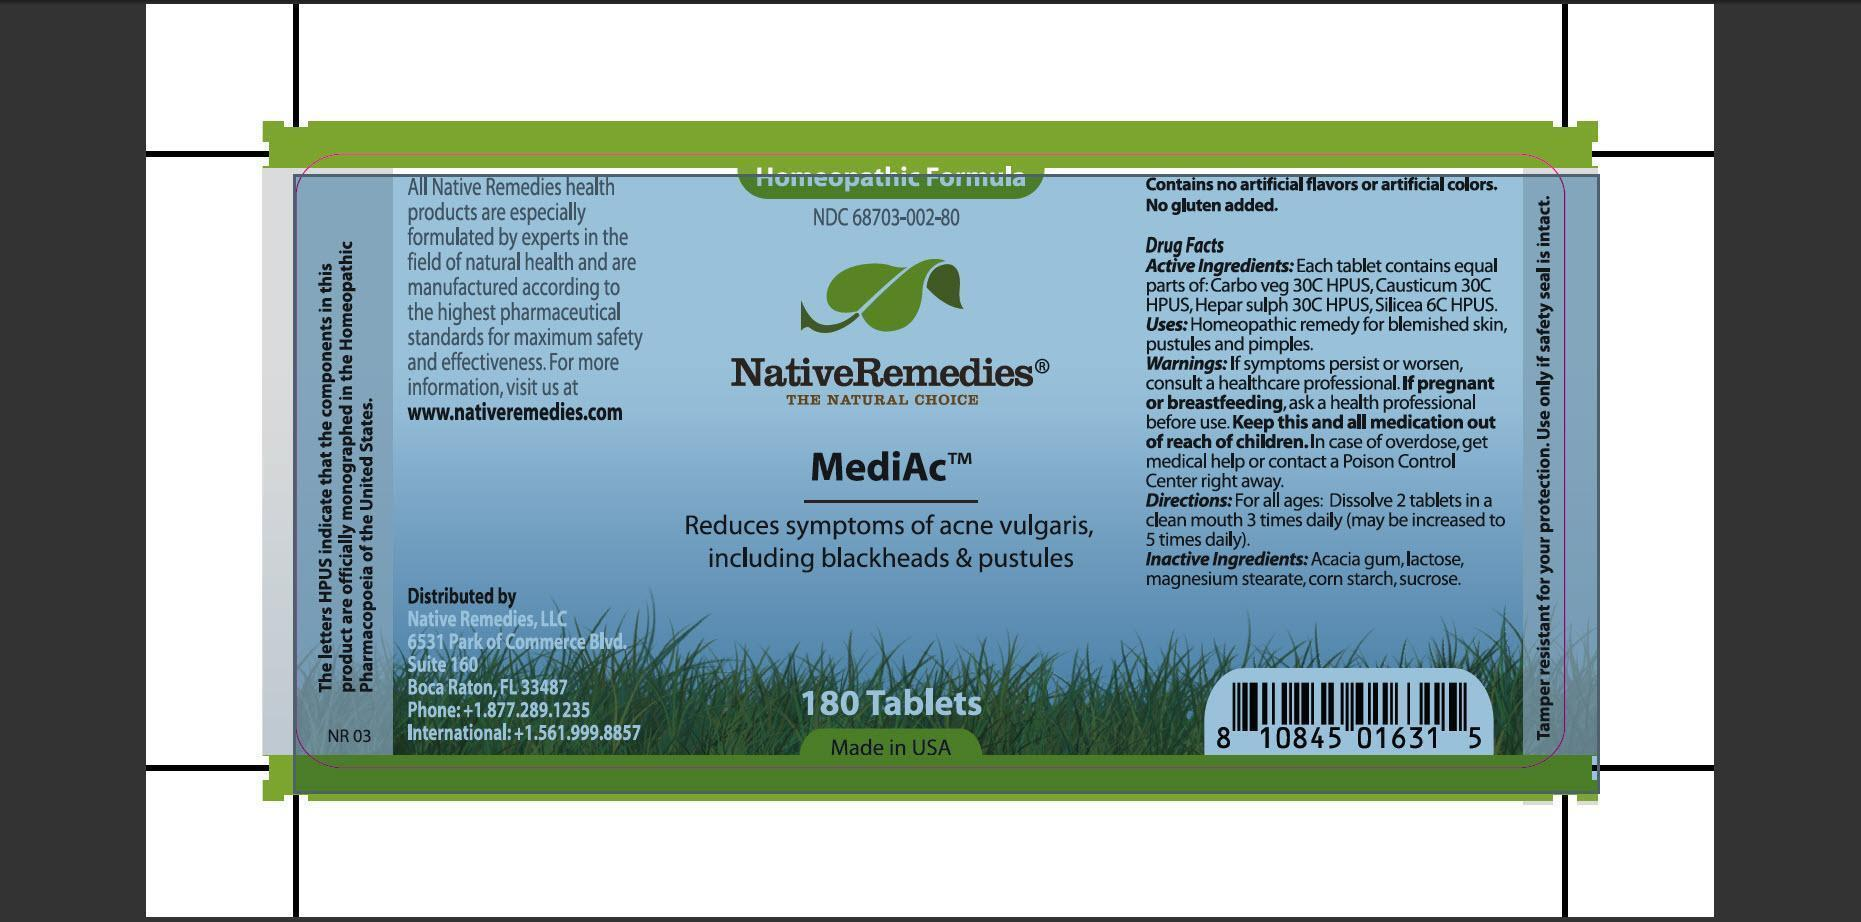 Mediac (Carbo Veg , Causticum, Hepar Sulph, Silicea , Acacia Gum, Lactose, Magnesium Stearate, Corn Starch, Sucrose) Tablet [Native Remedies Llc]